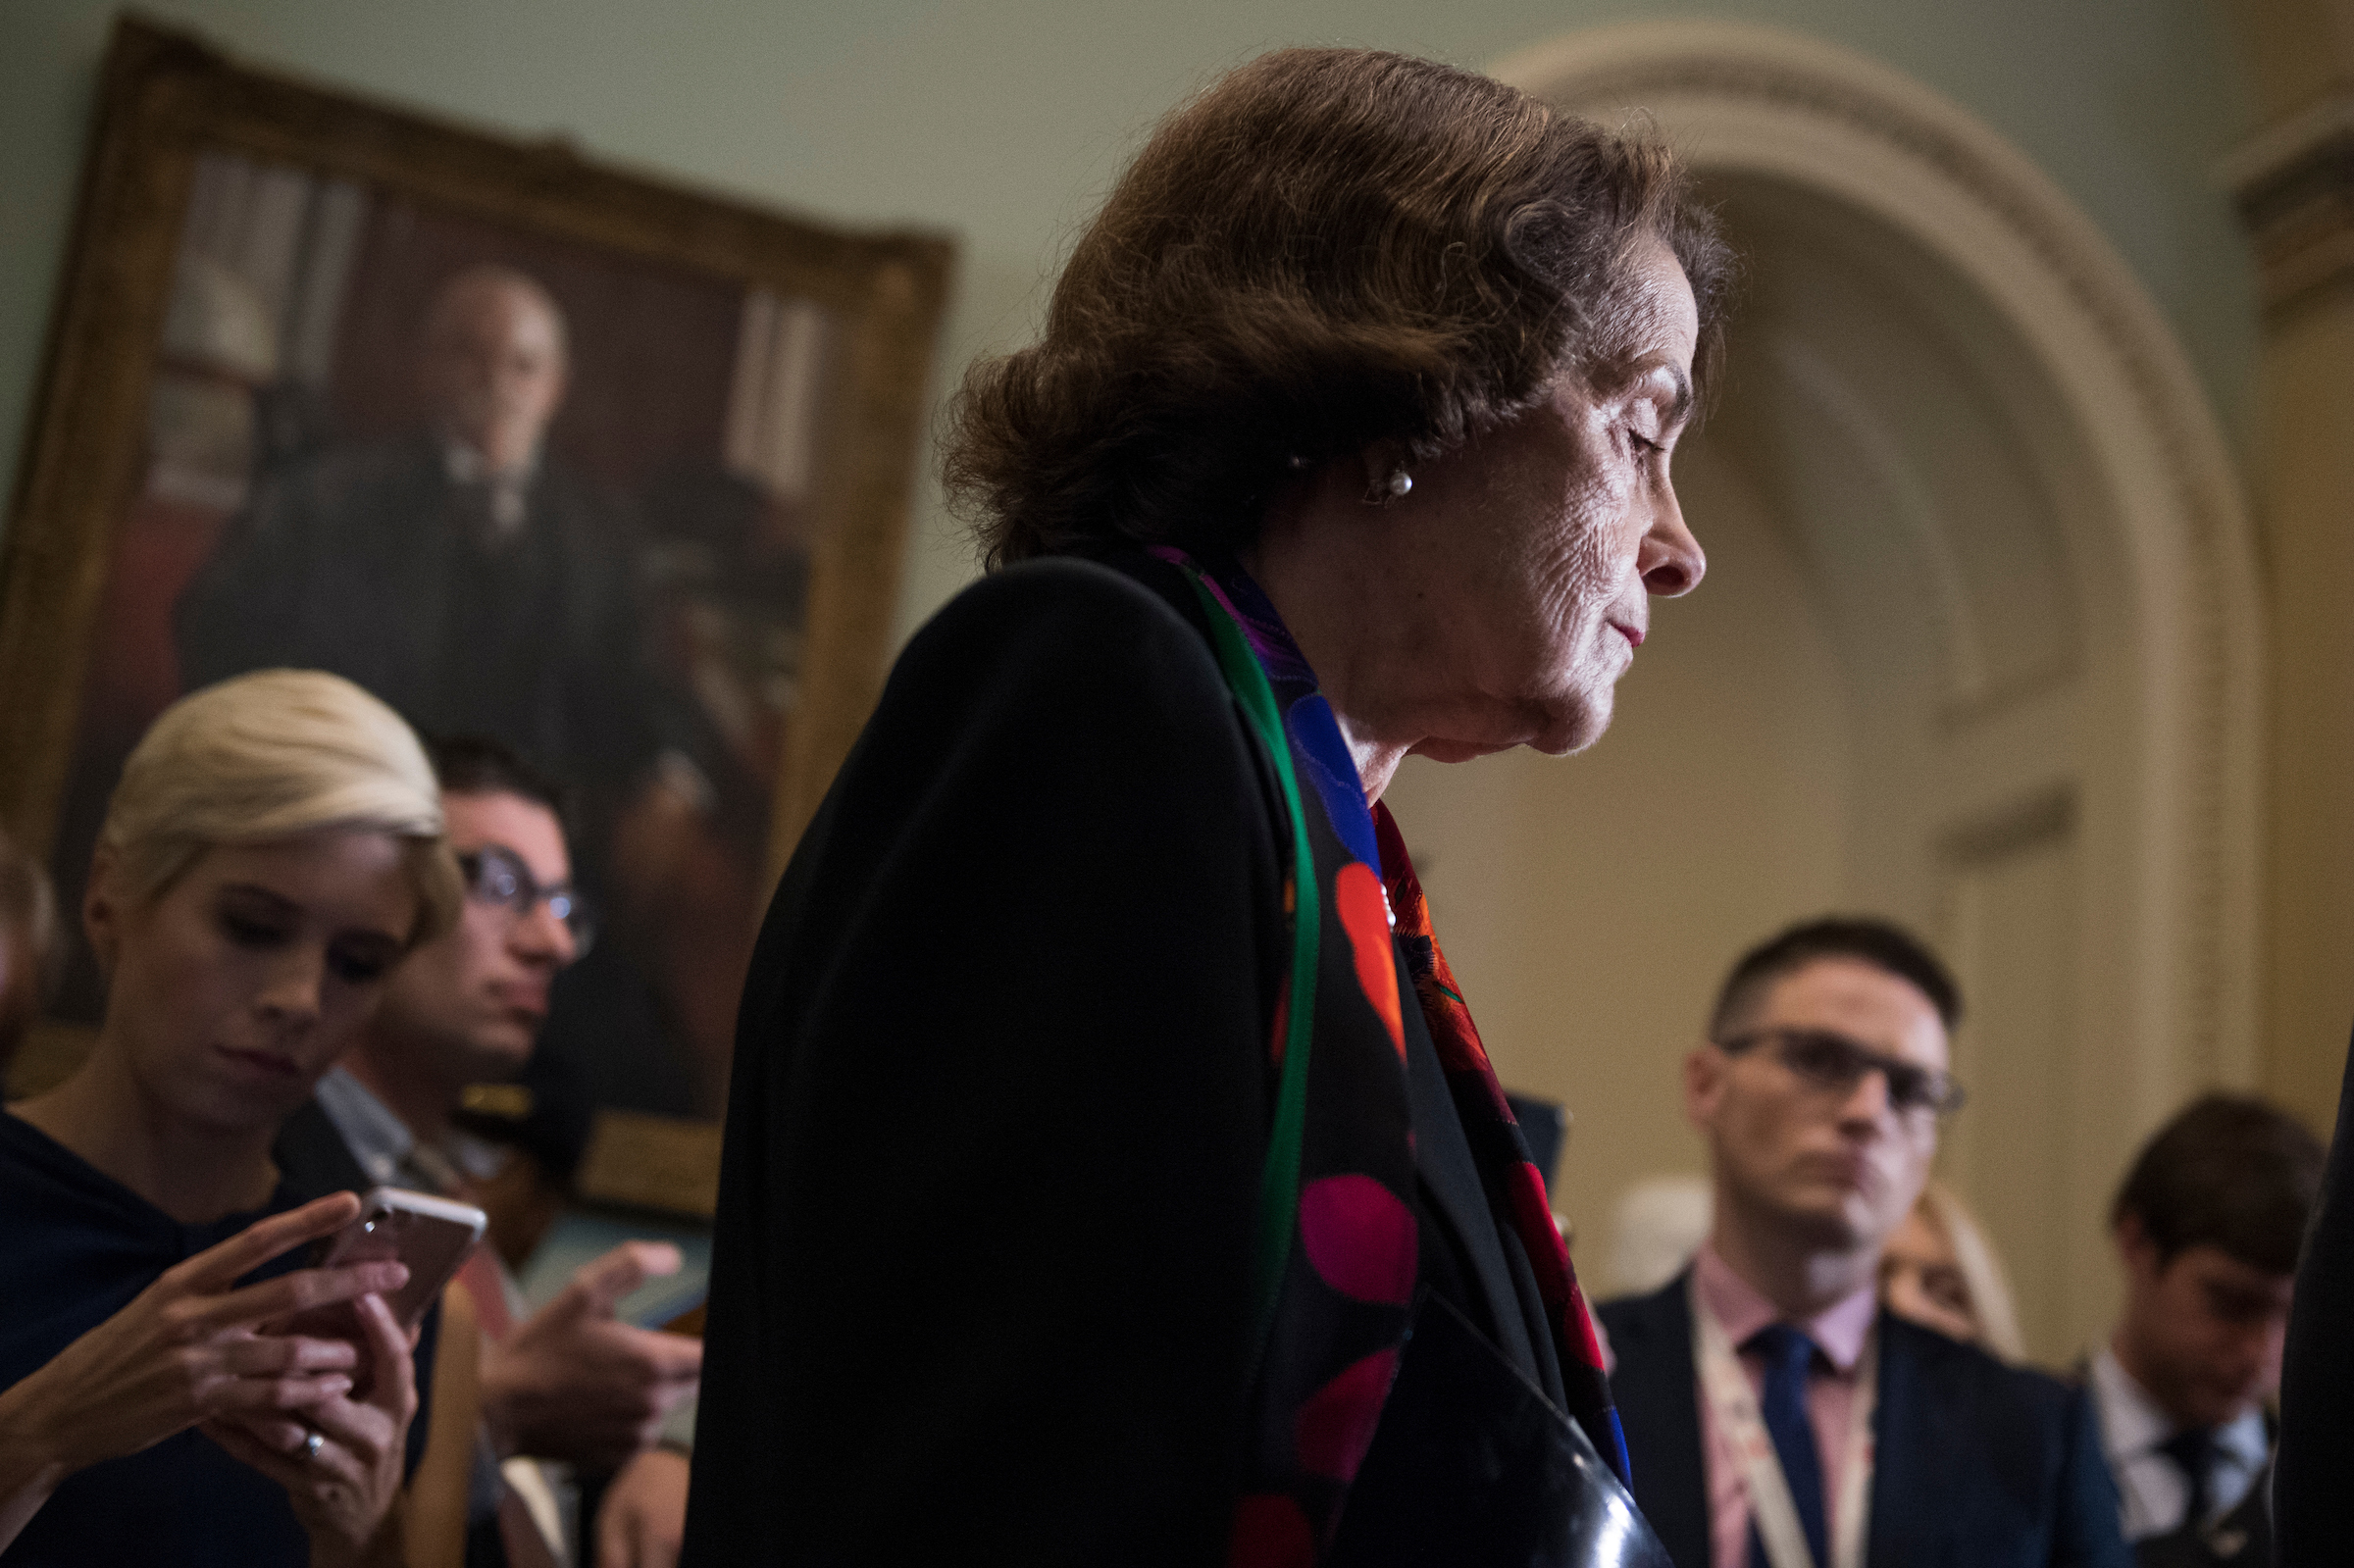 california man charged with threatening to kill sen dianne feinstein roll call https www rollcall com 2018 10 12 california man charged with threatening to kill sen dianne feinstein